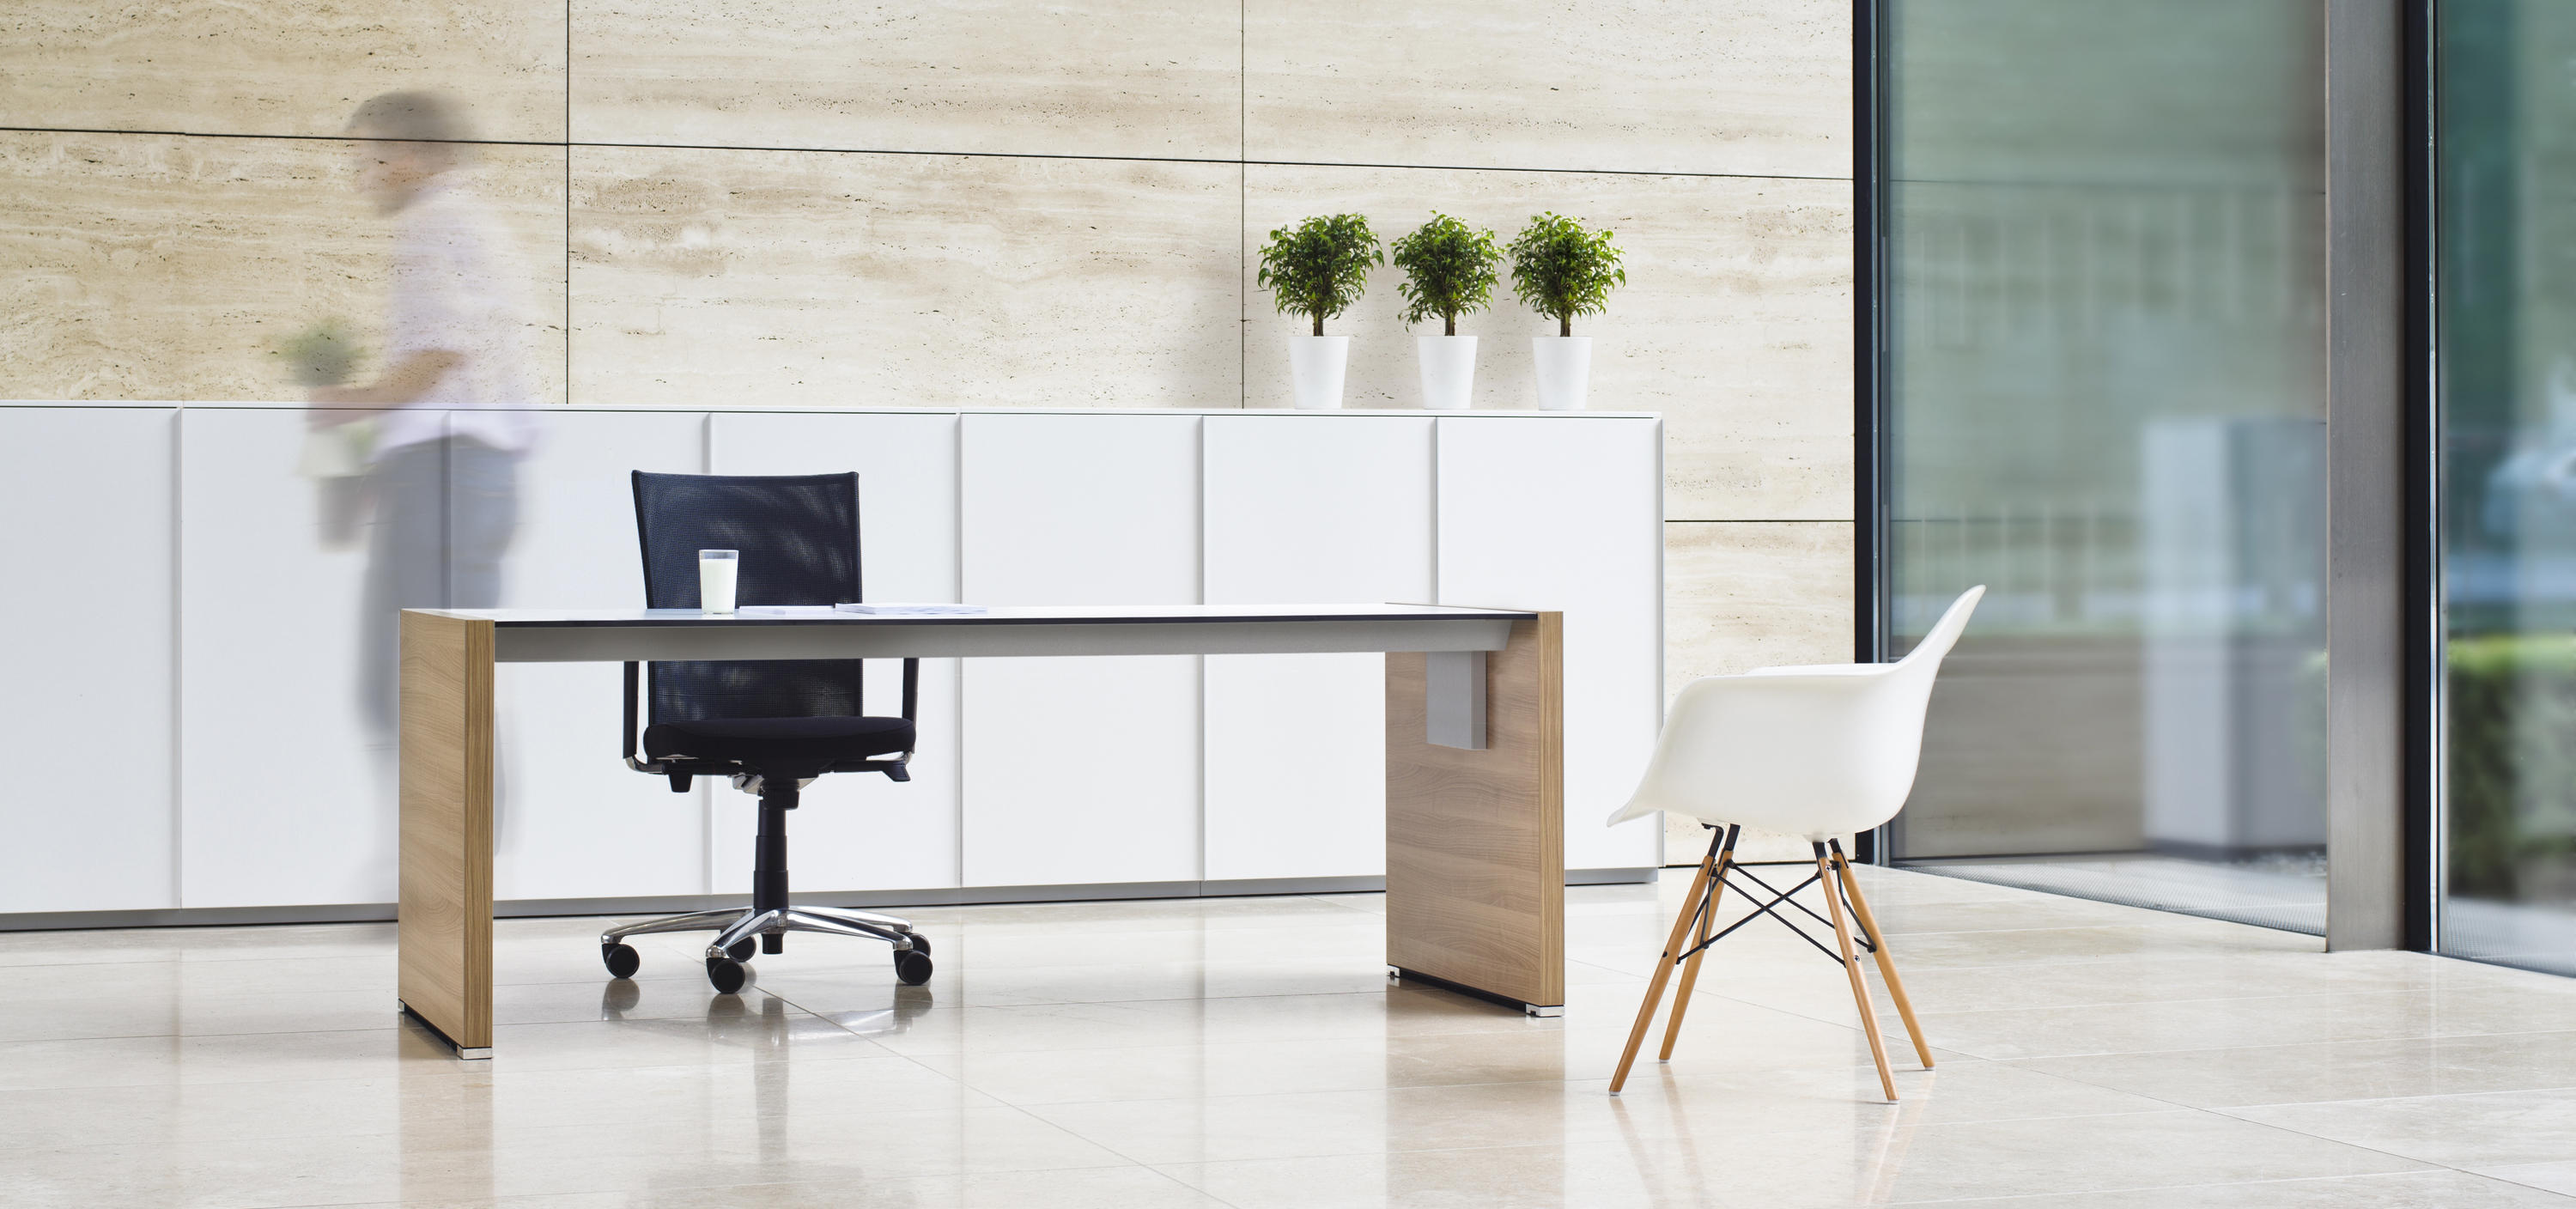 Conclusion Desking Systems From Vario Architonic